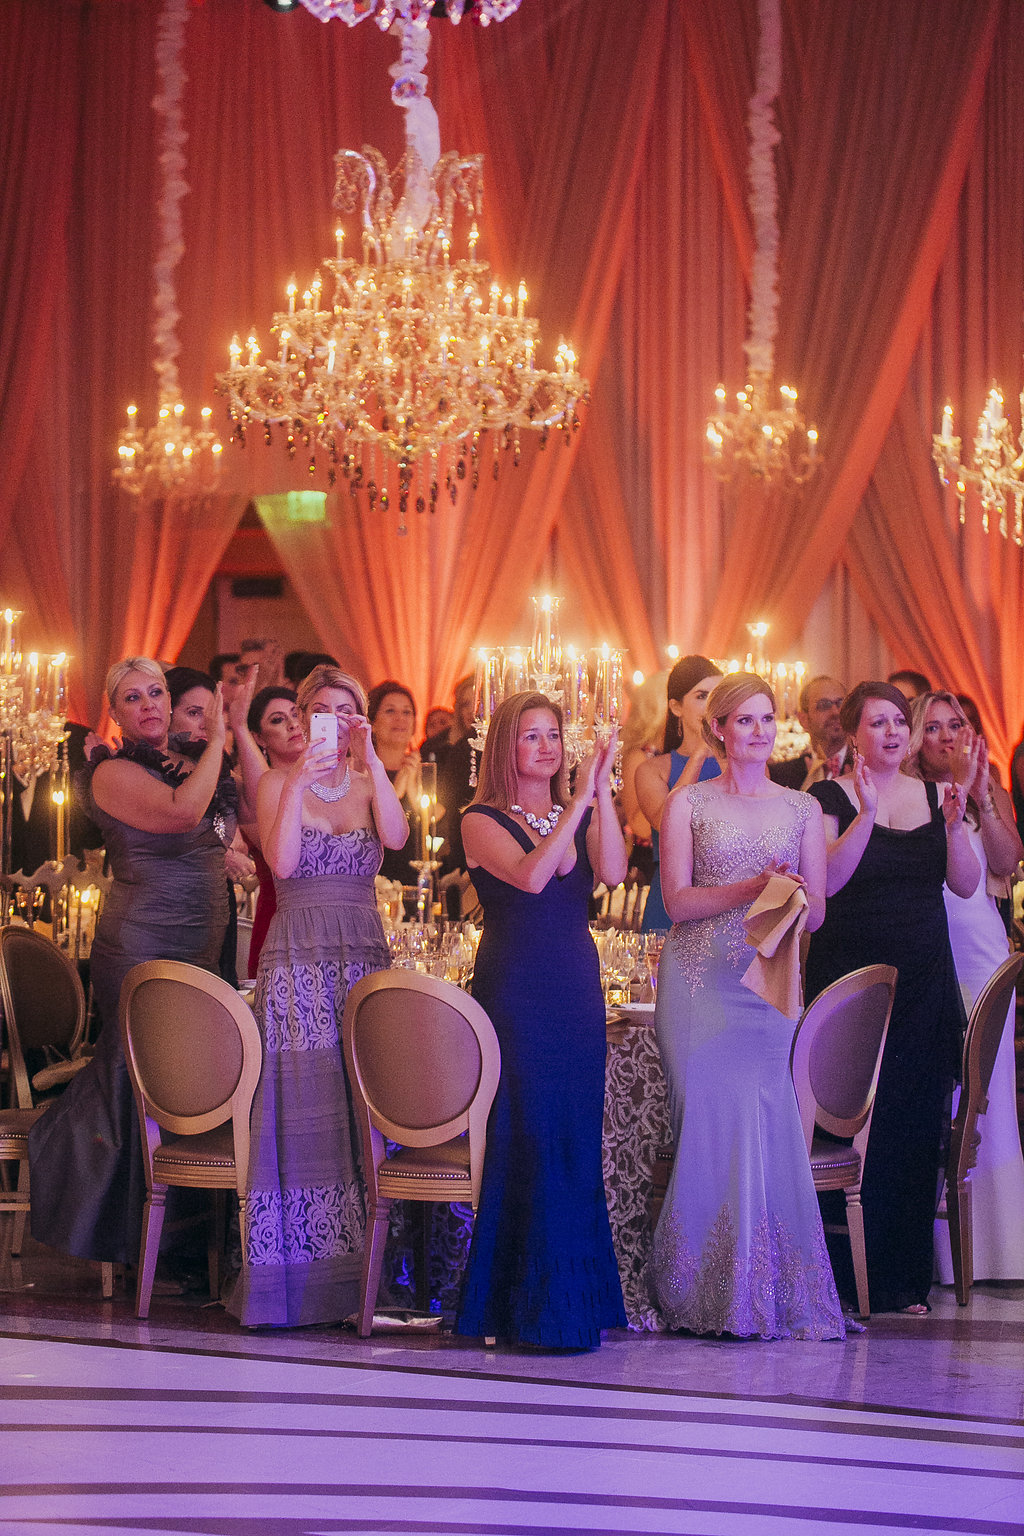 women in long gowns standing next to a dinner table in a ballroom with chandeliers